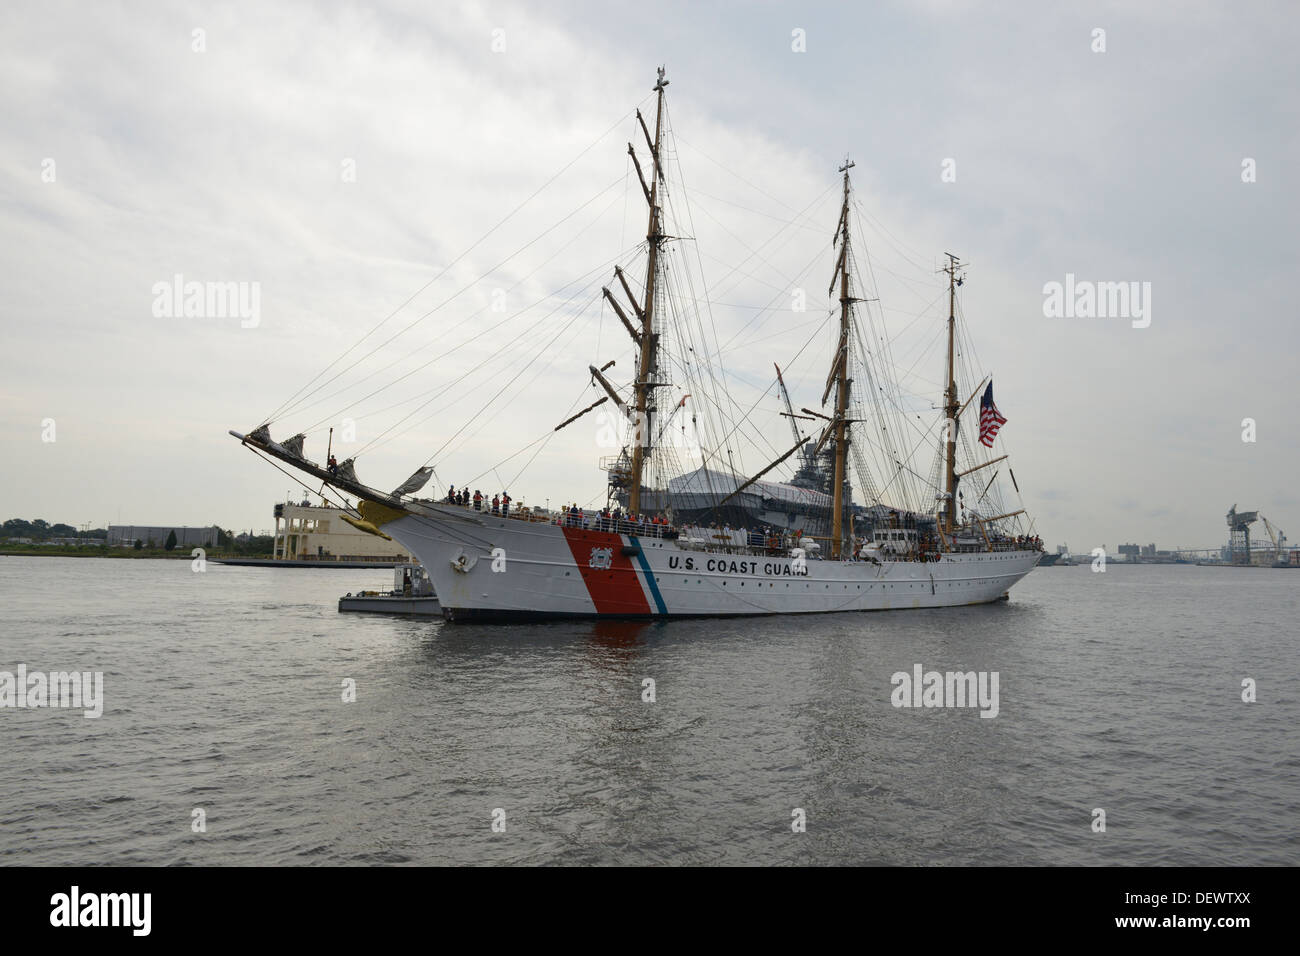 The Coast Guard Cutter Eagle is shown transisting the Elizabeth River toward downtown Portsmouth, Va., Friday, Sept. 13, 2013. - Stock Image